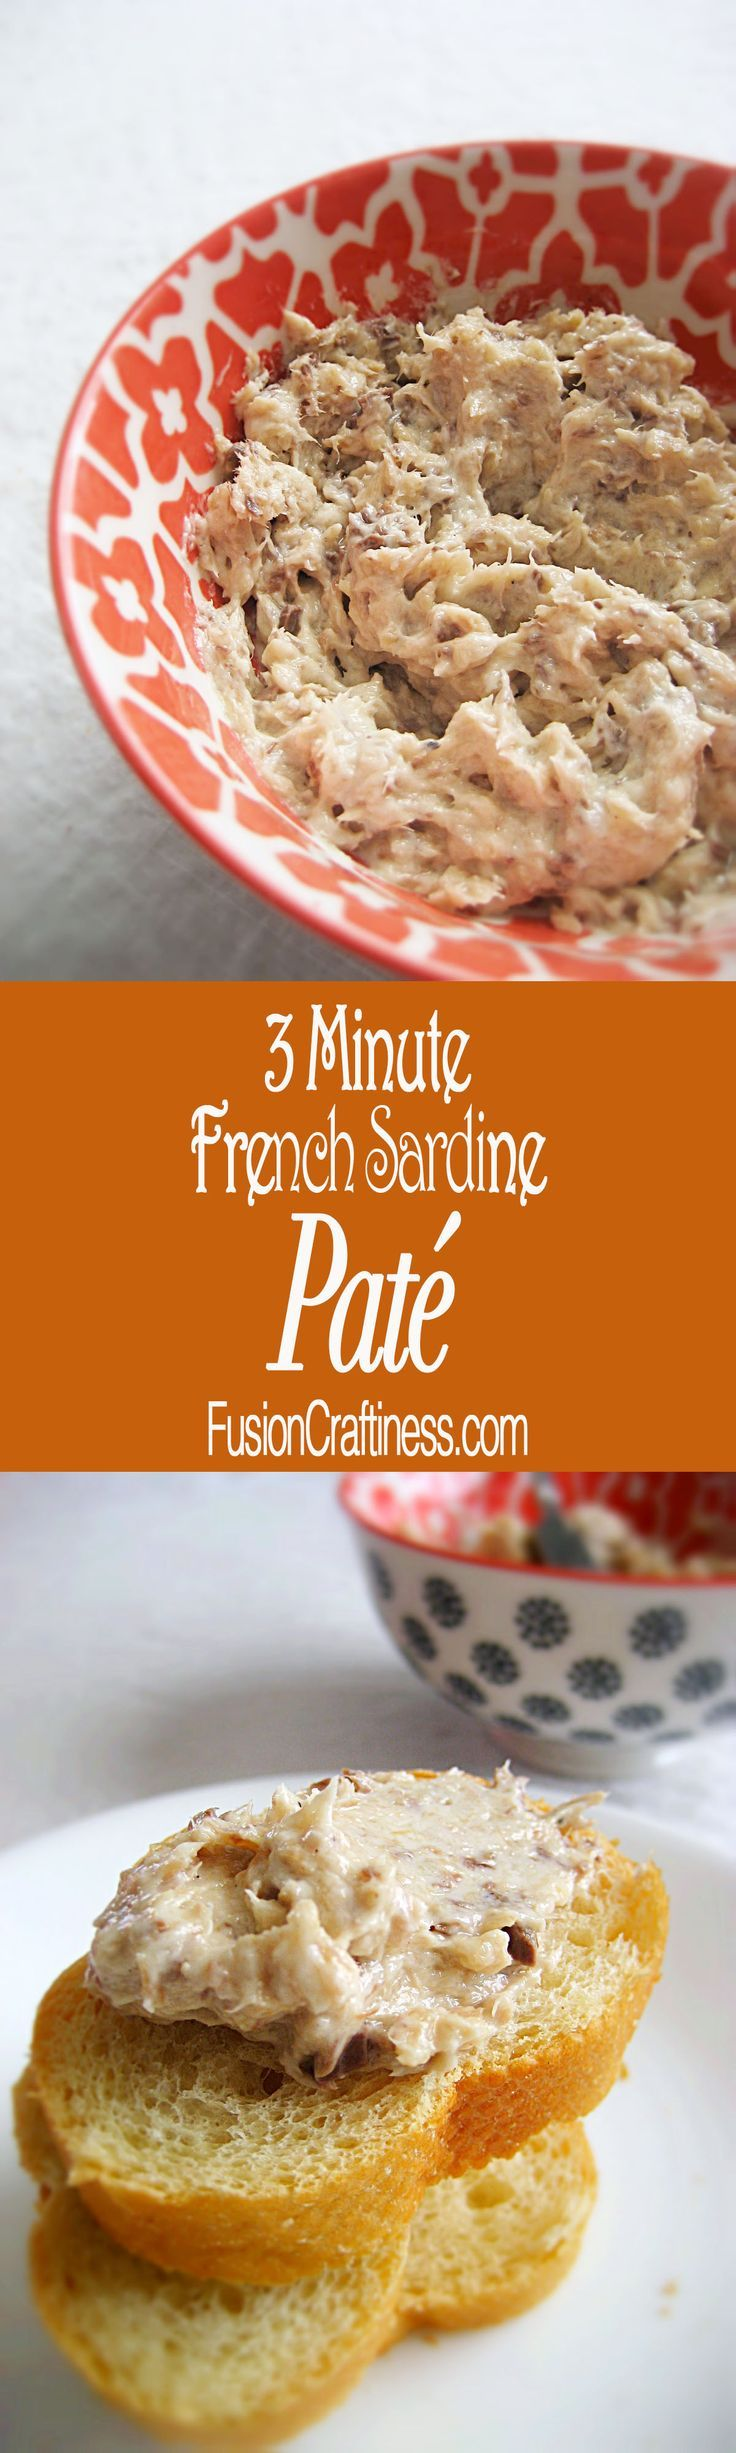 3 Minute French Sardine Pate, easy and delightful!